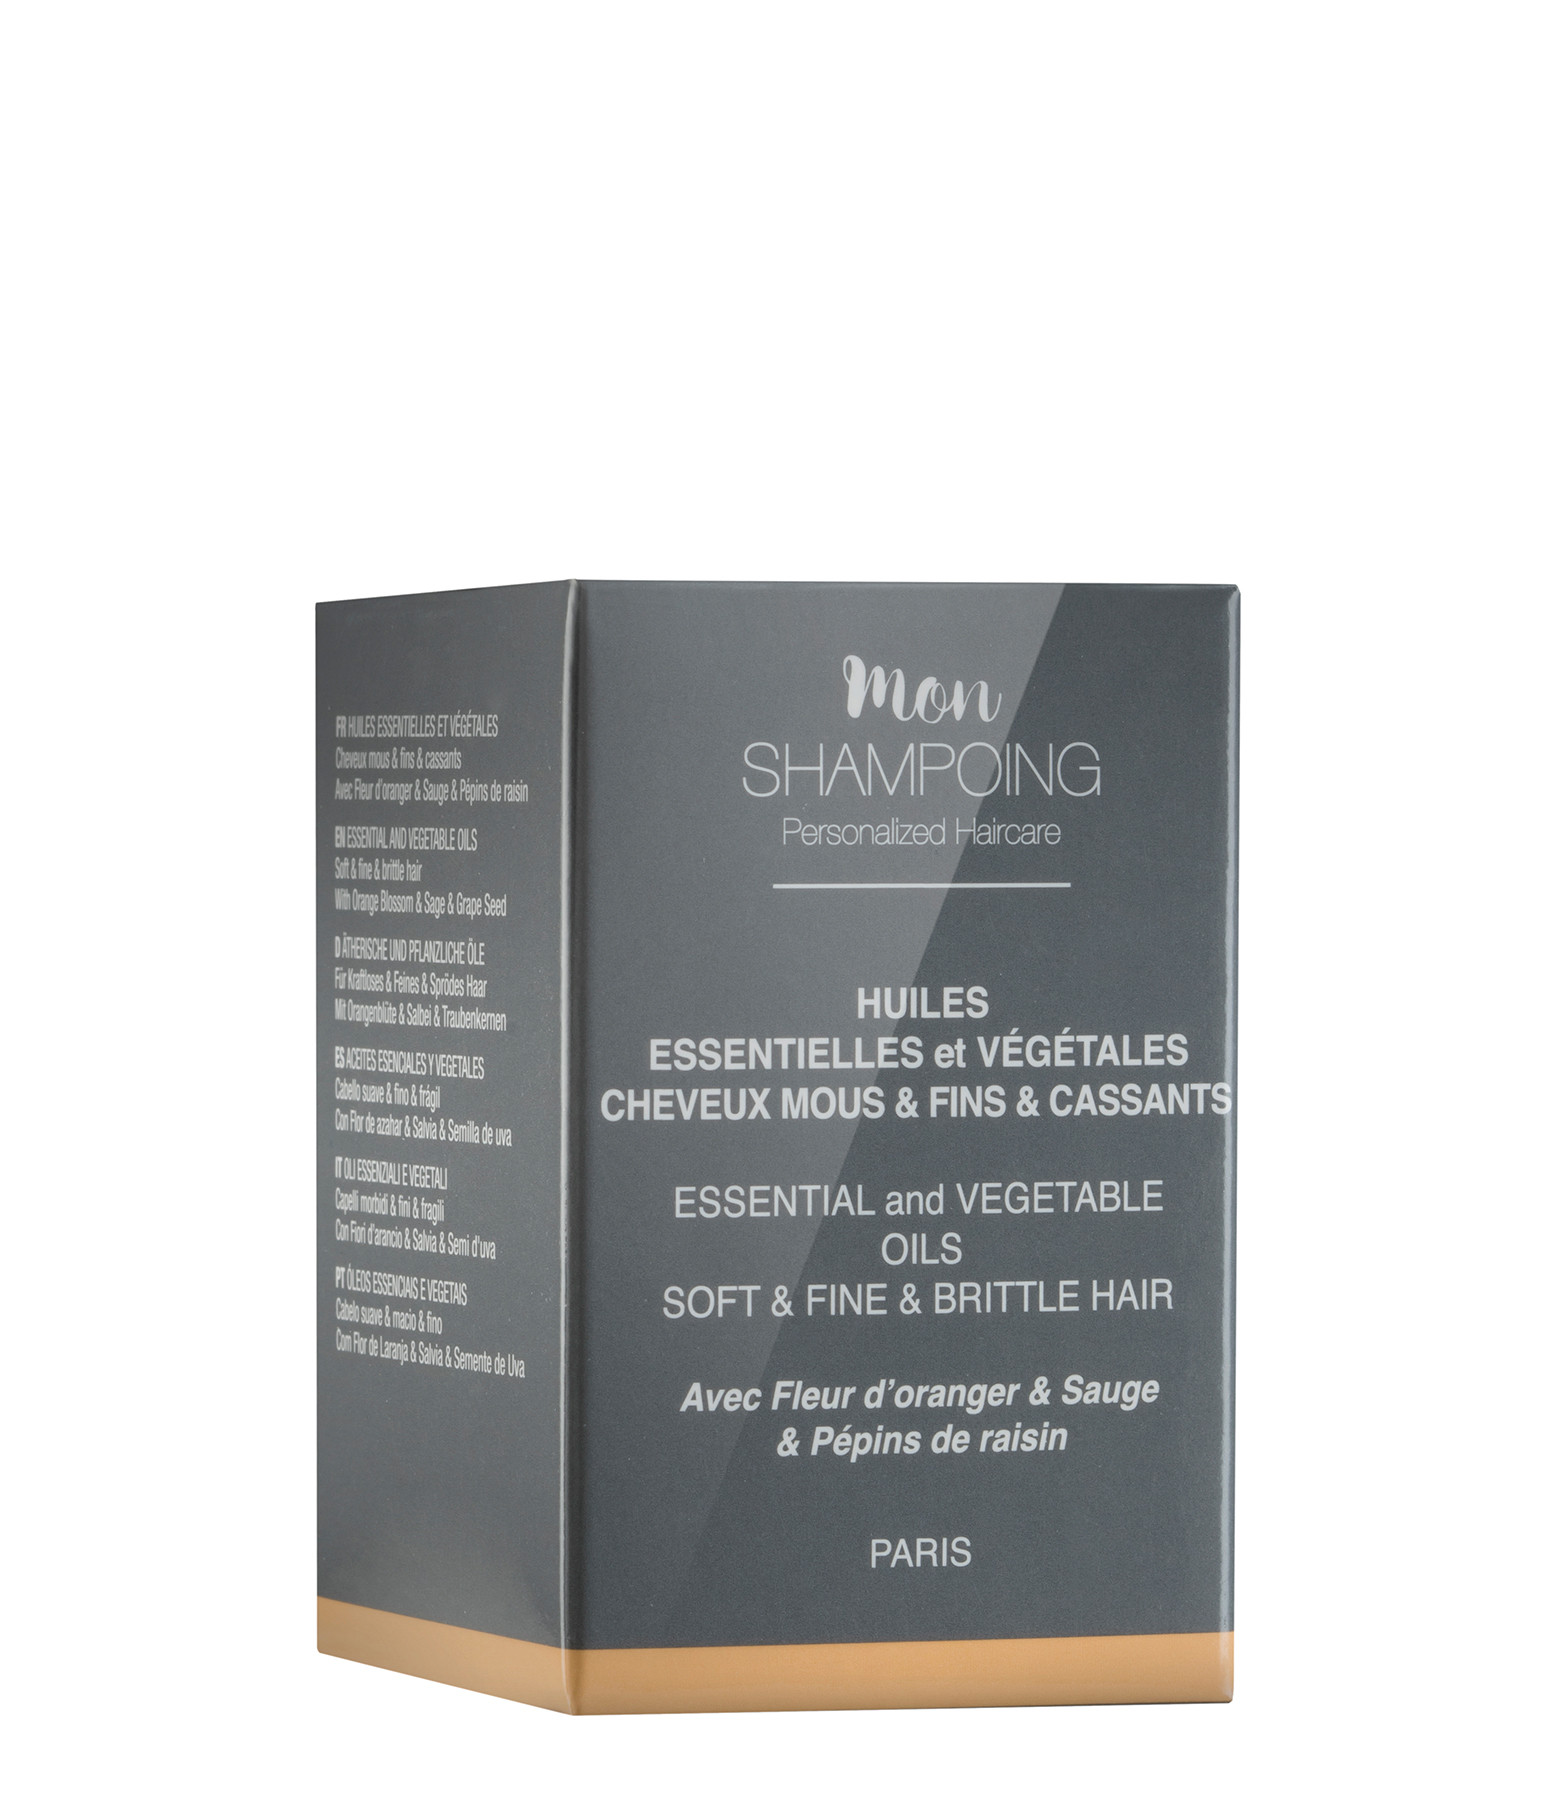 MON SHAMPOING - Booster Huiles Essentielles Cheveux Fins 5ml